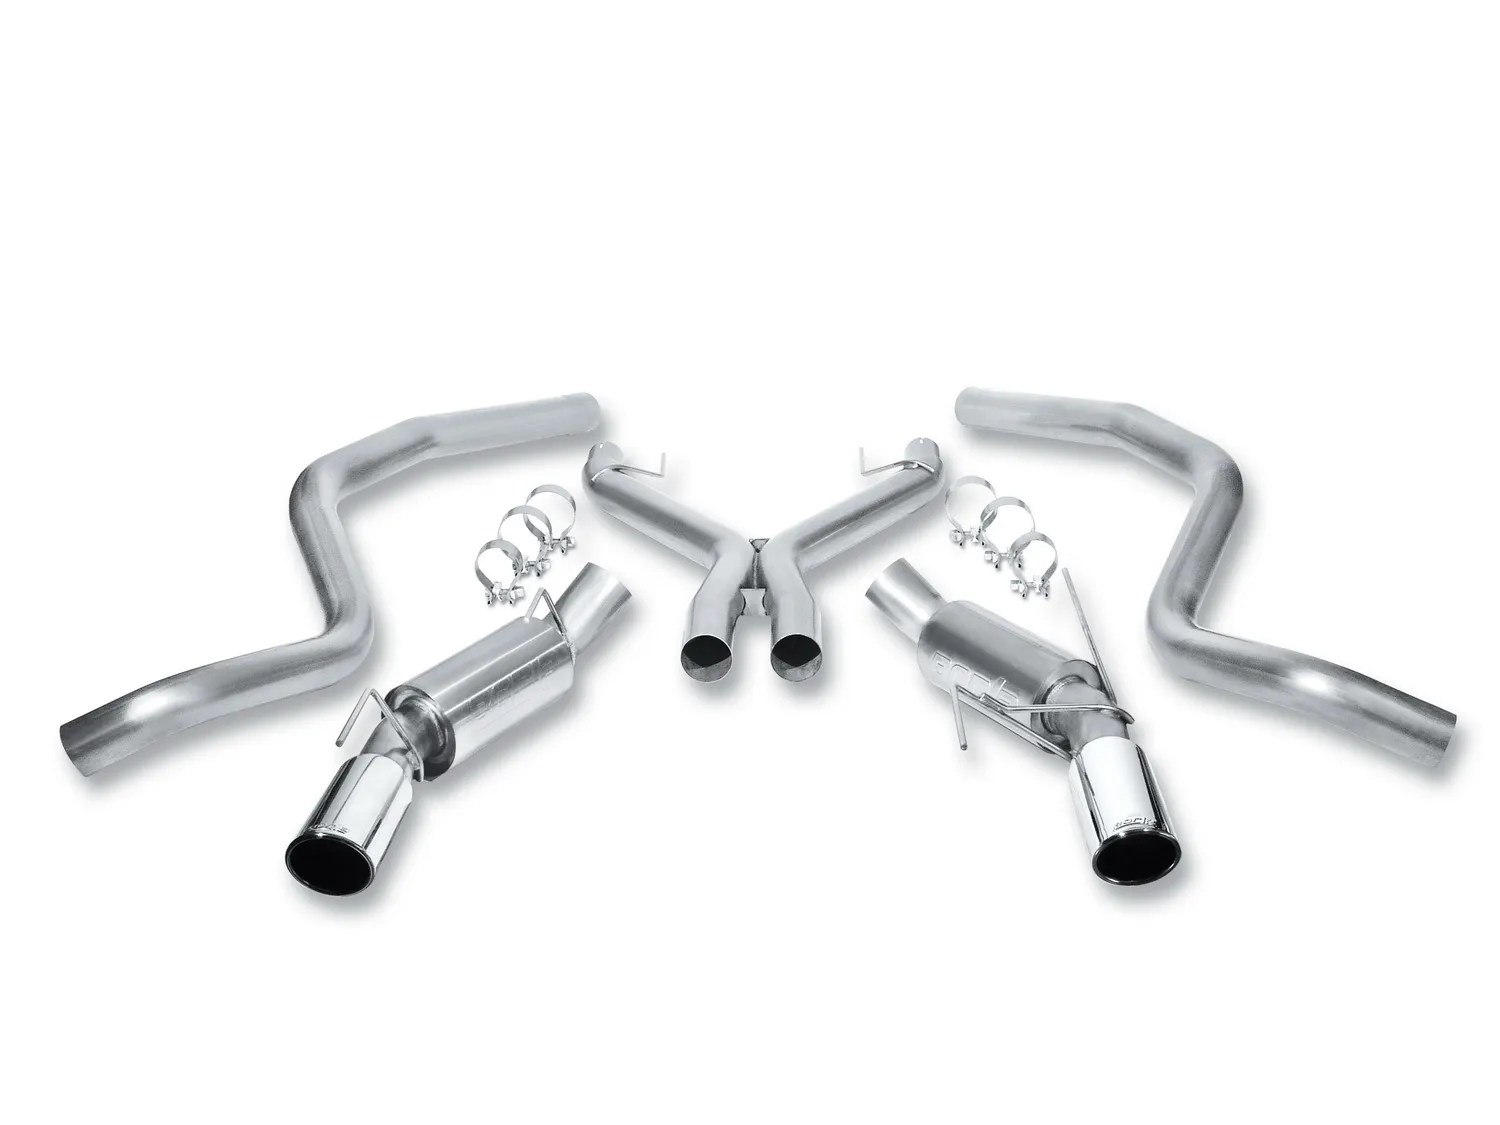 Borla Touring Cat-Back Exhaust System for 2005-2009 Ford